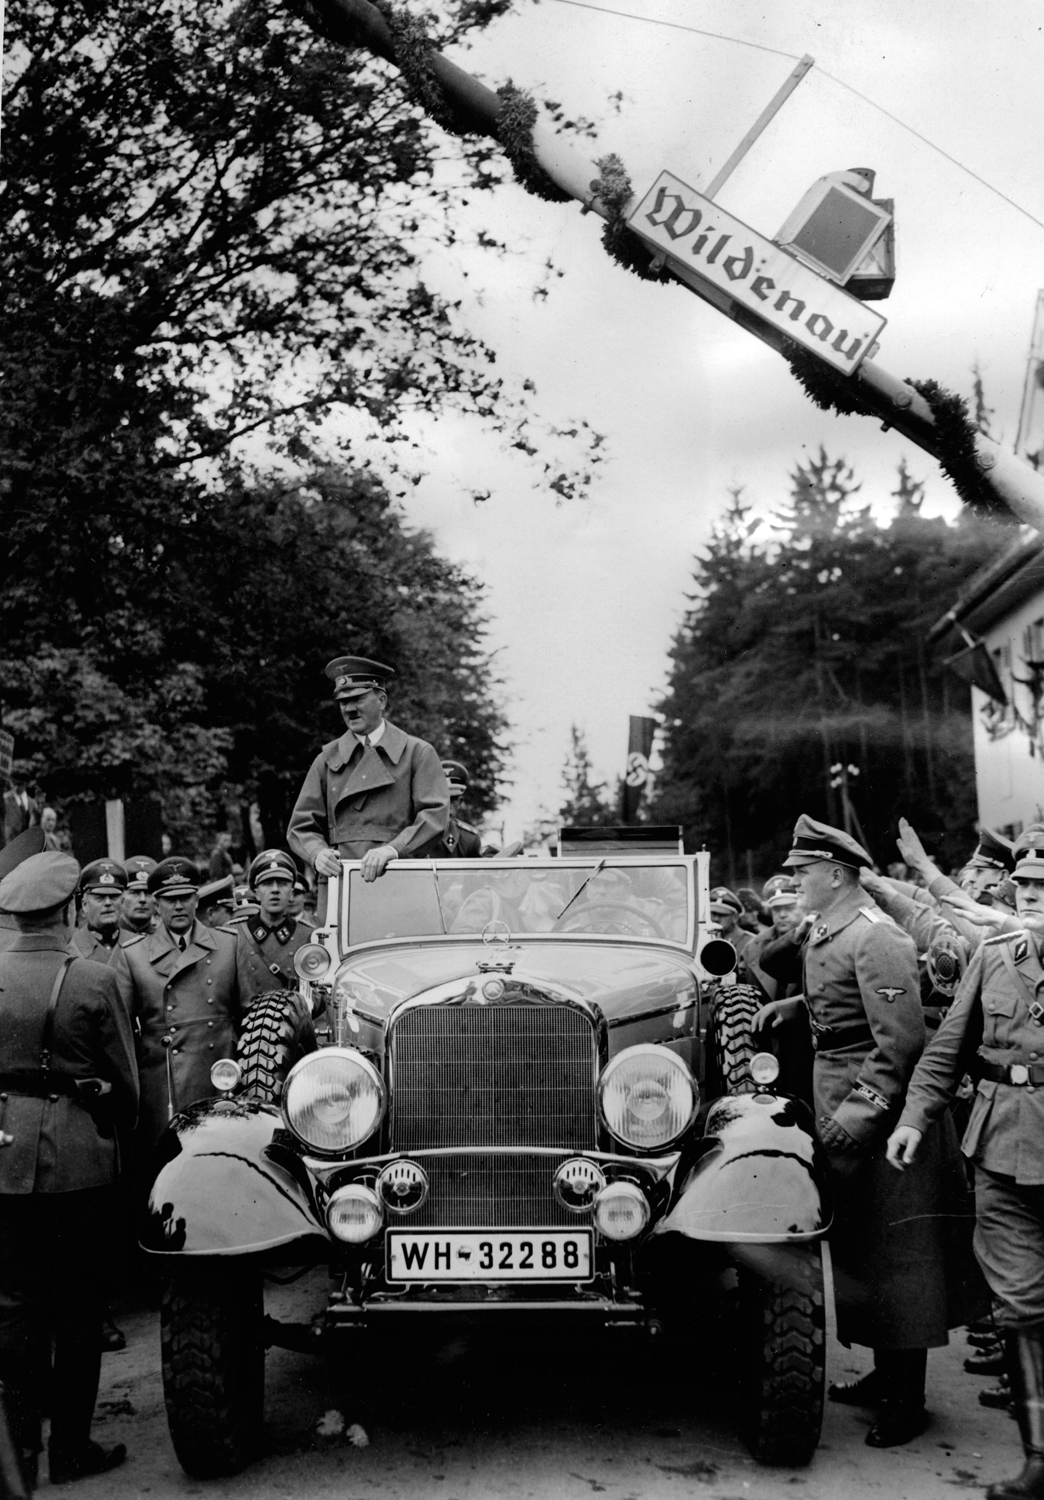 Adolf Hitler crosses the Wildenau border from Germany into Sudetenland with his troops